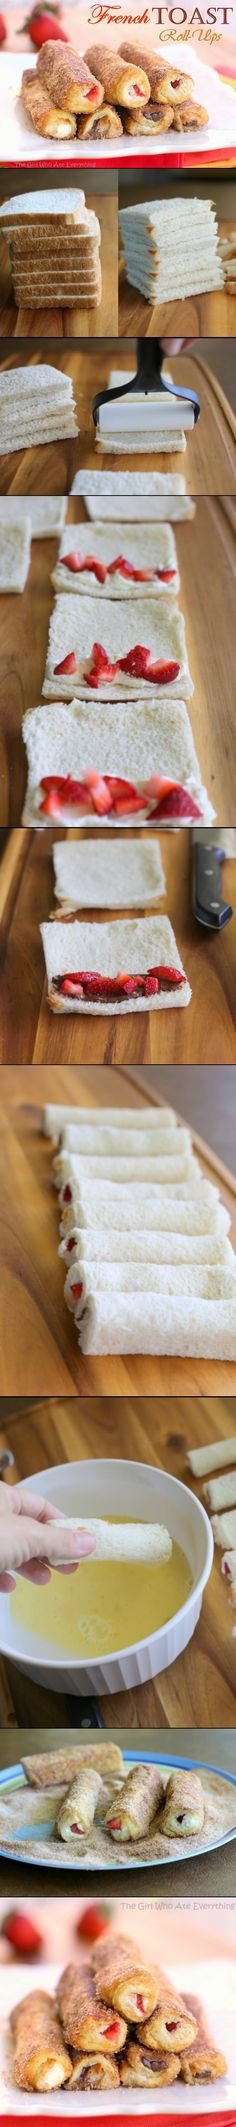 Easy and fun French toast roll ups. Fill them with cream cheese and berries or nutella and bananas. Instructions are in a different language but the photos make it pretty much self explanatory. Delicious Desserts, Dessert Recipes, Yummy Food, Elegante Desserts, French Toast Roll Ups, Diy Food, Love Food, Kids Meals, Nutella